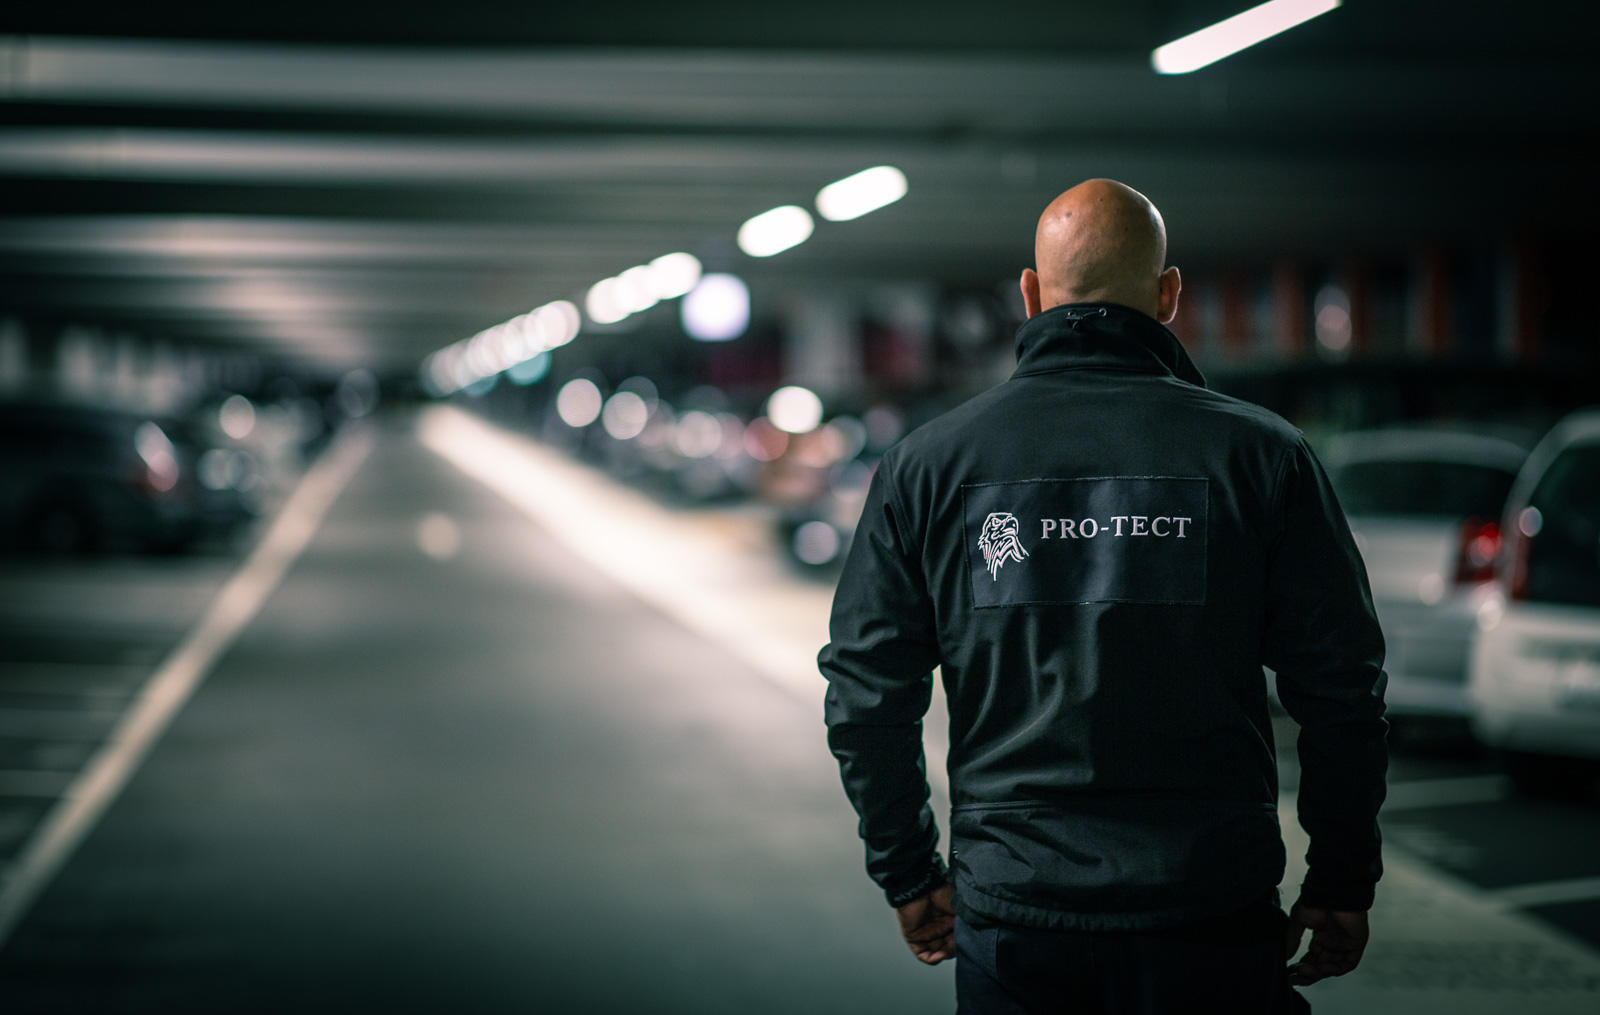 Pro Tect Security Basel GmbH